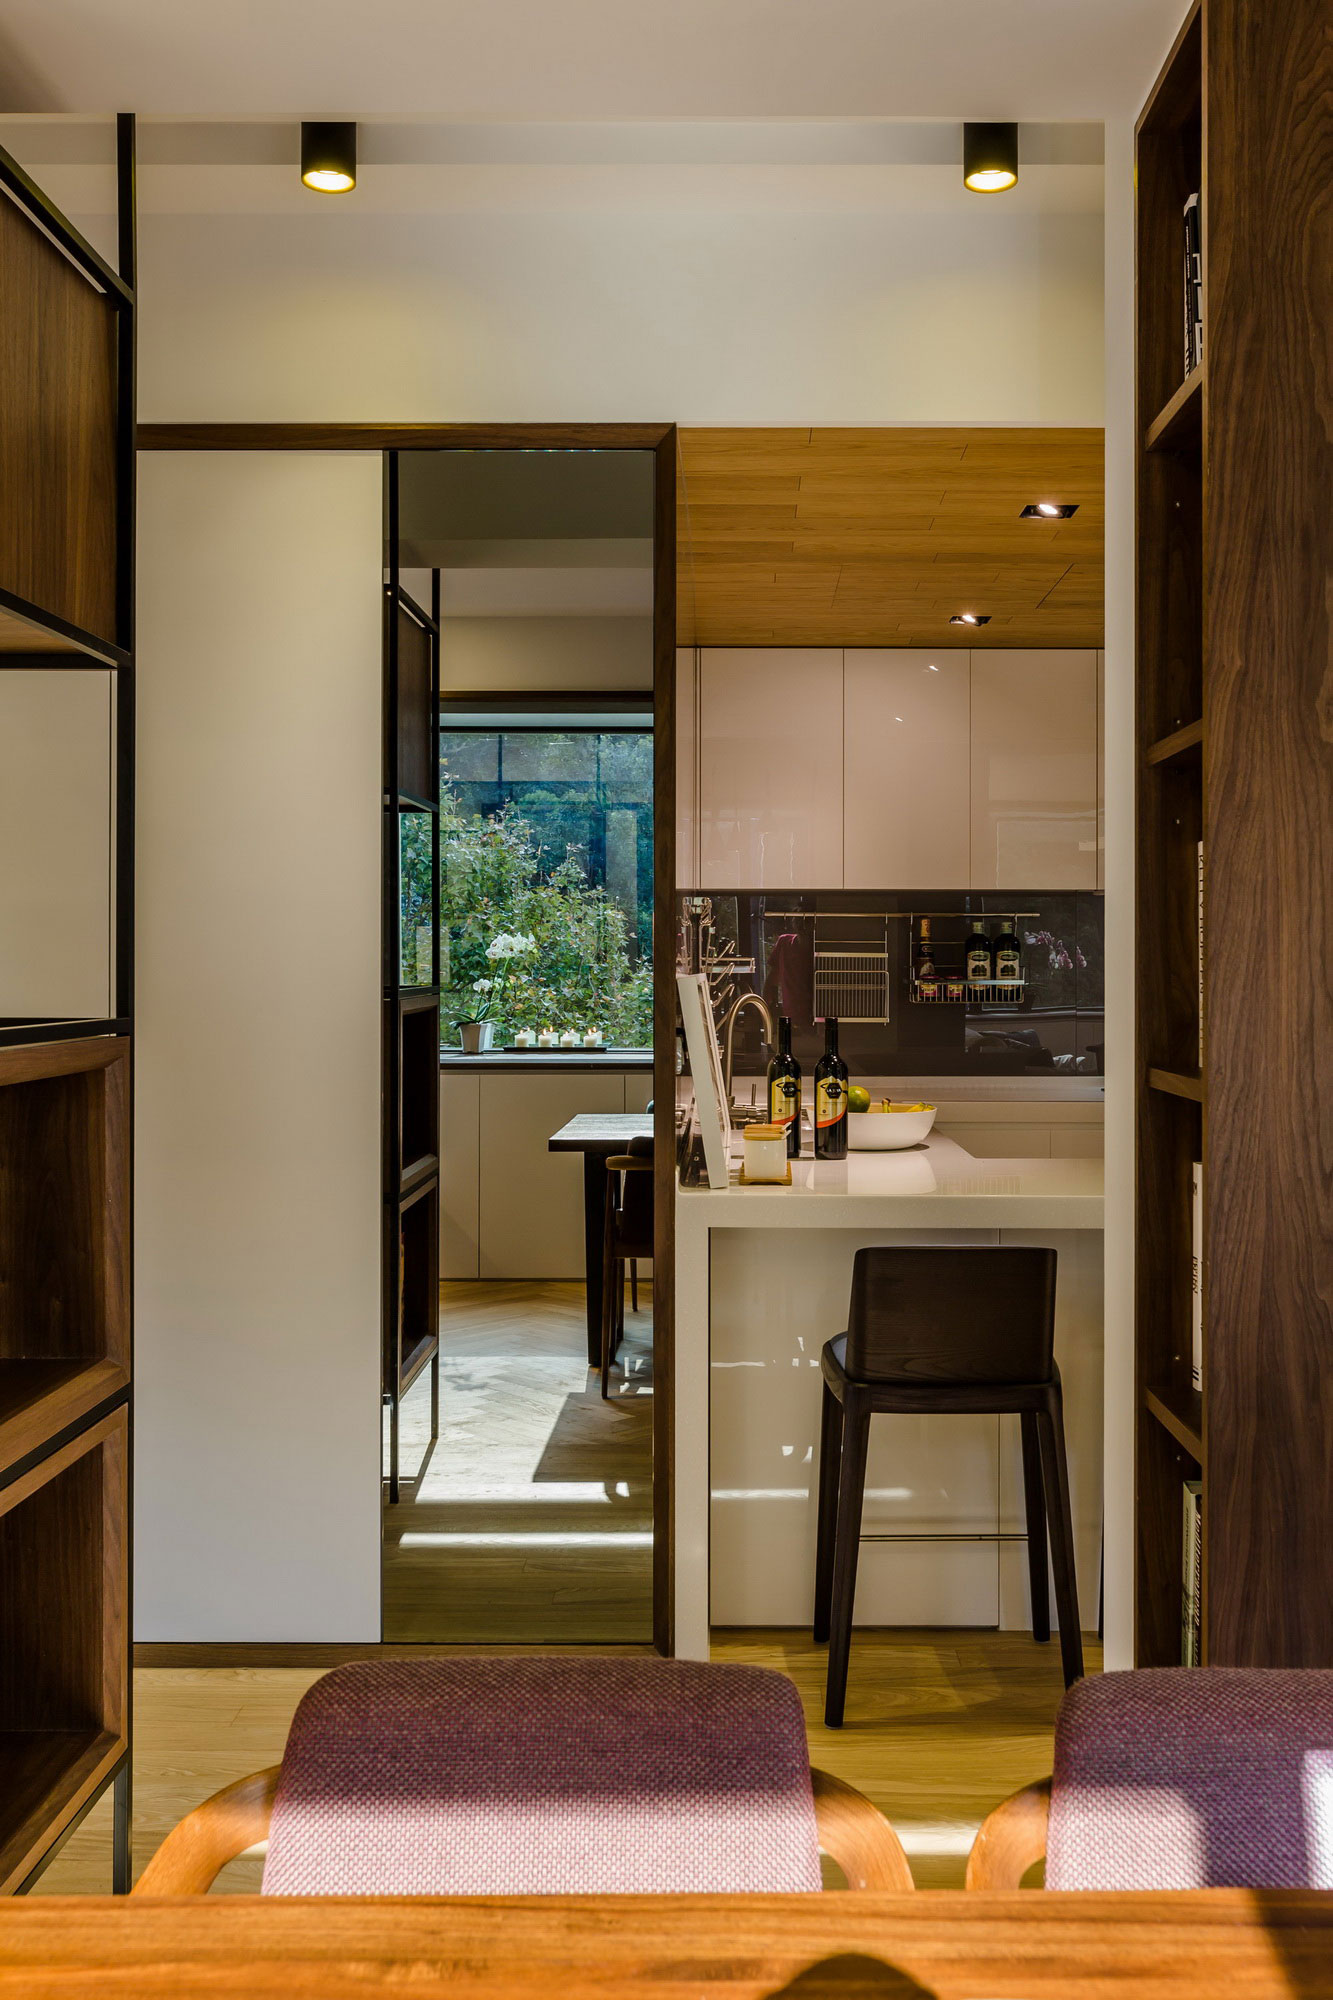 Apartment: Renovated Apartment By Archlin Studio: Chen Residence